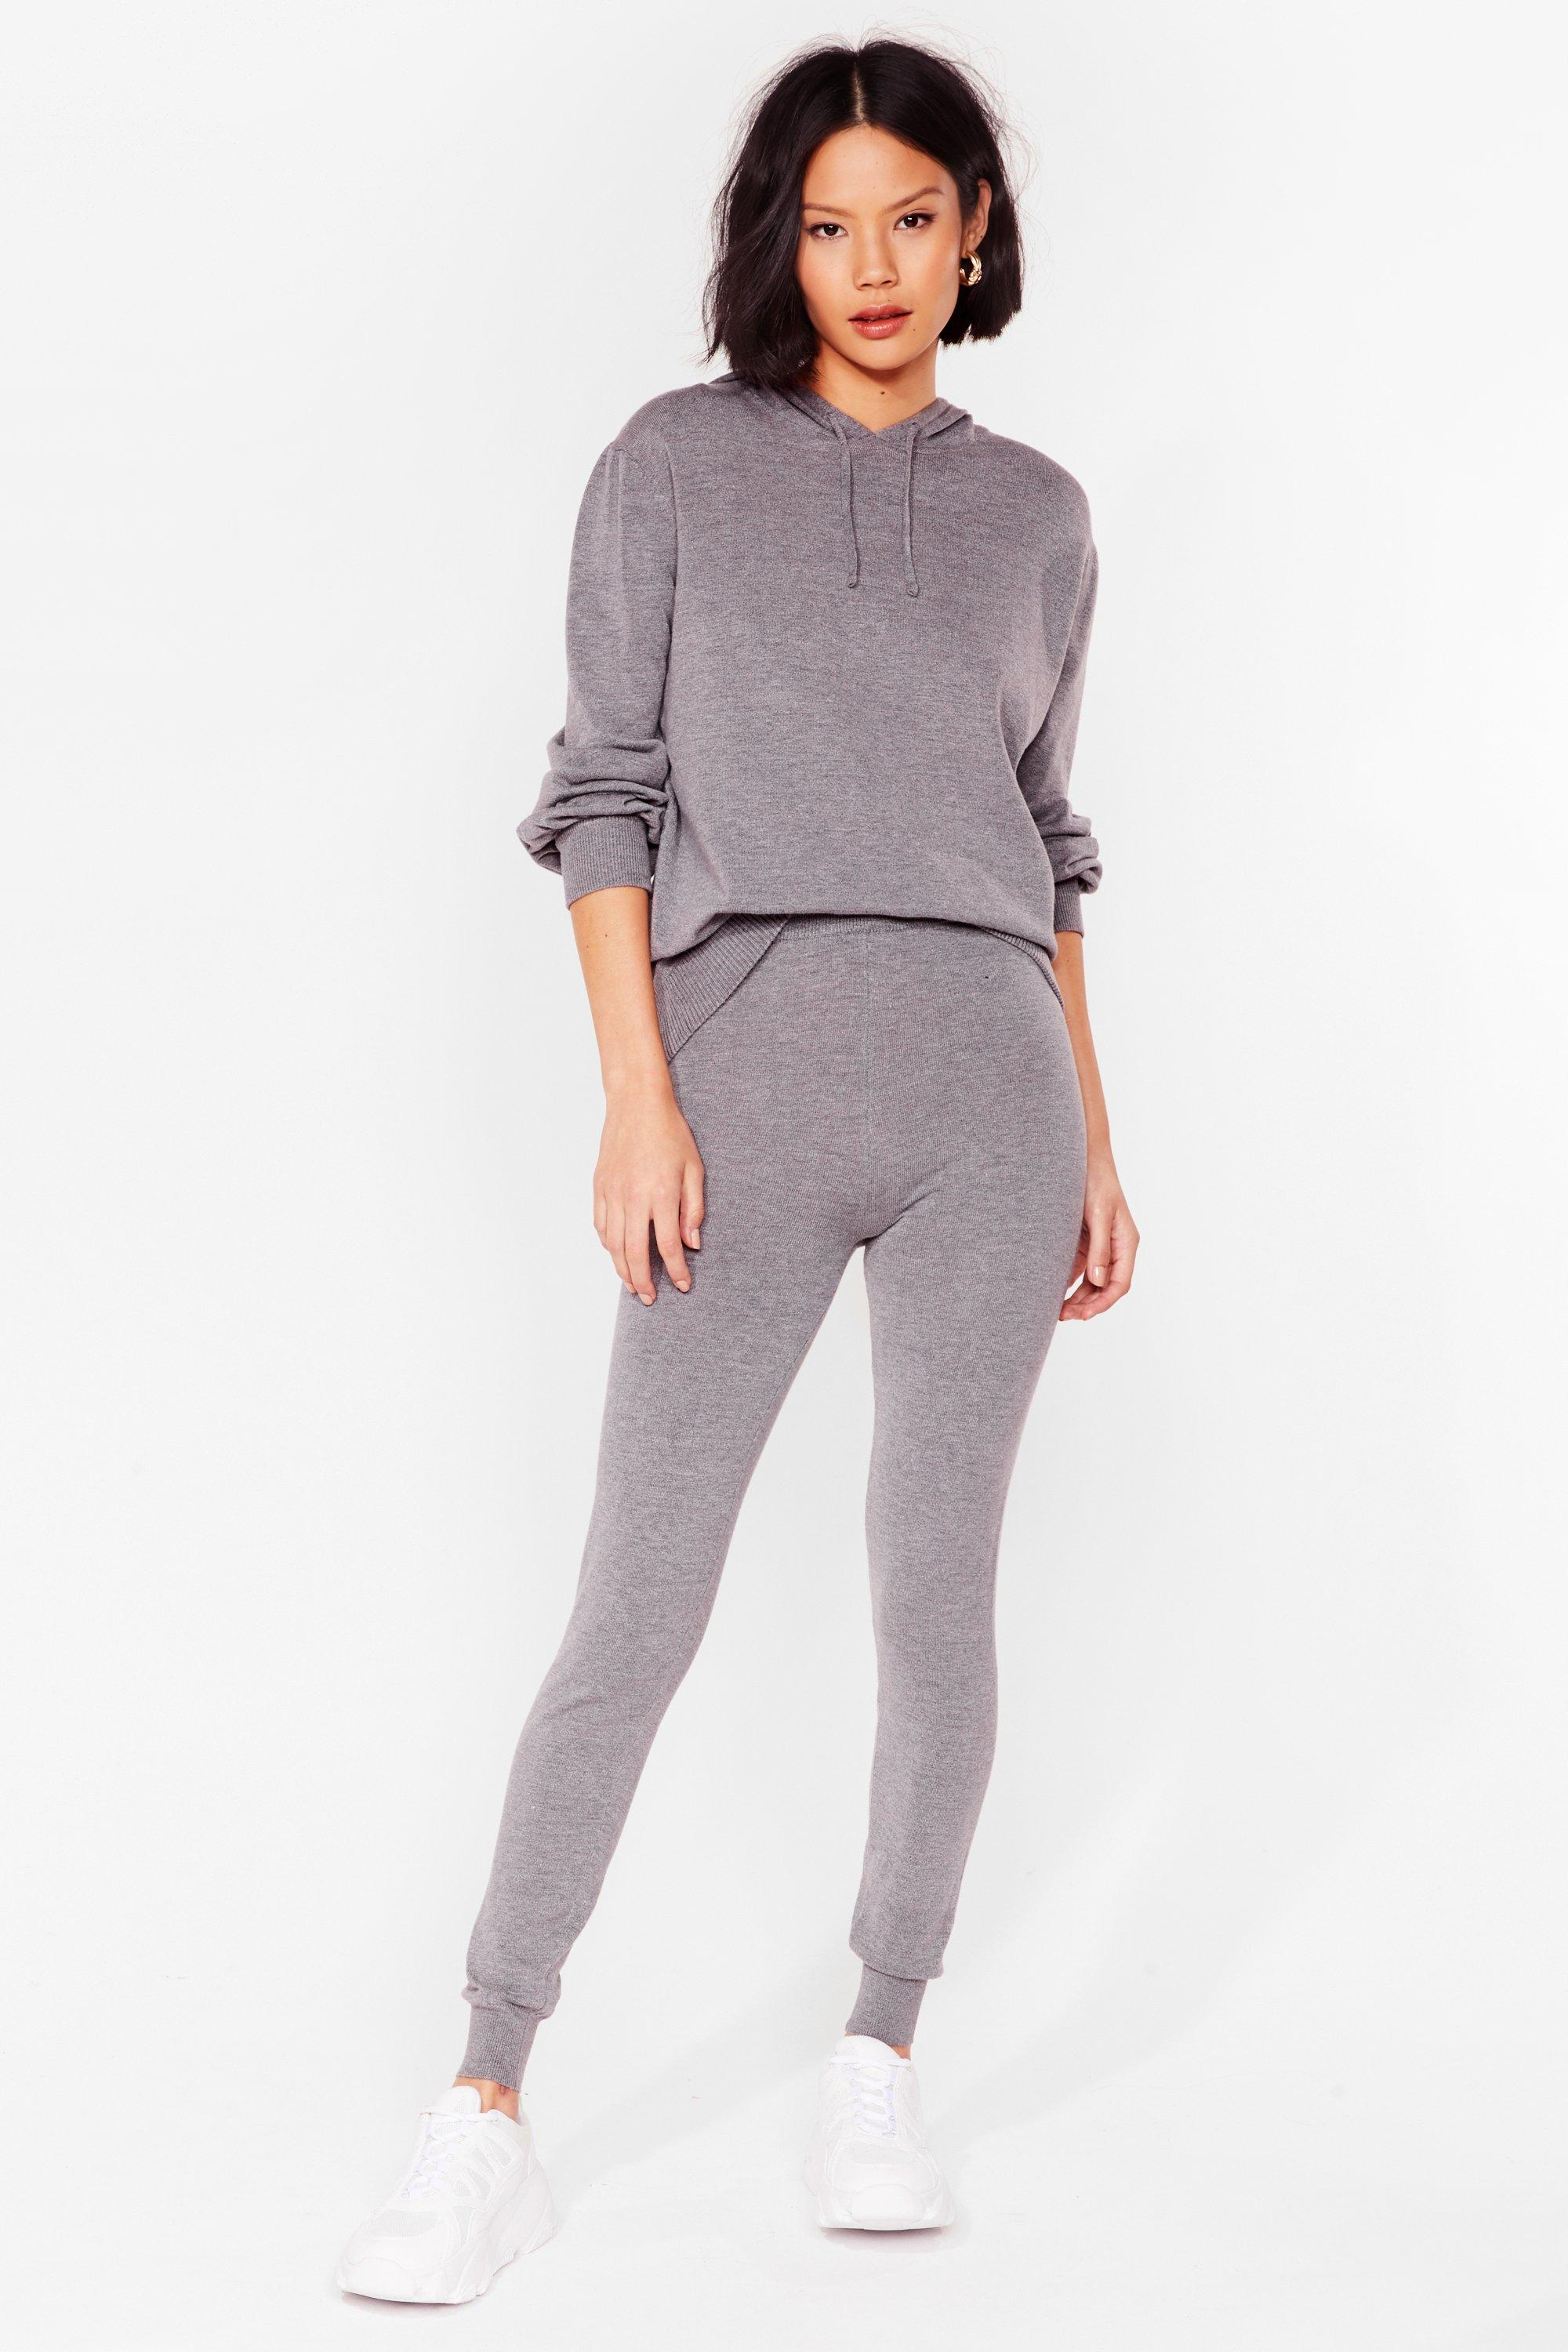 Image of Womens Leave 'Em to Knit Hoodie and Leggings Lounge Set - Grey